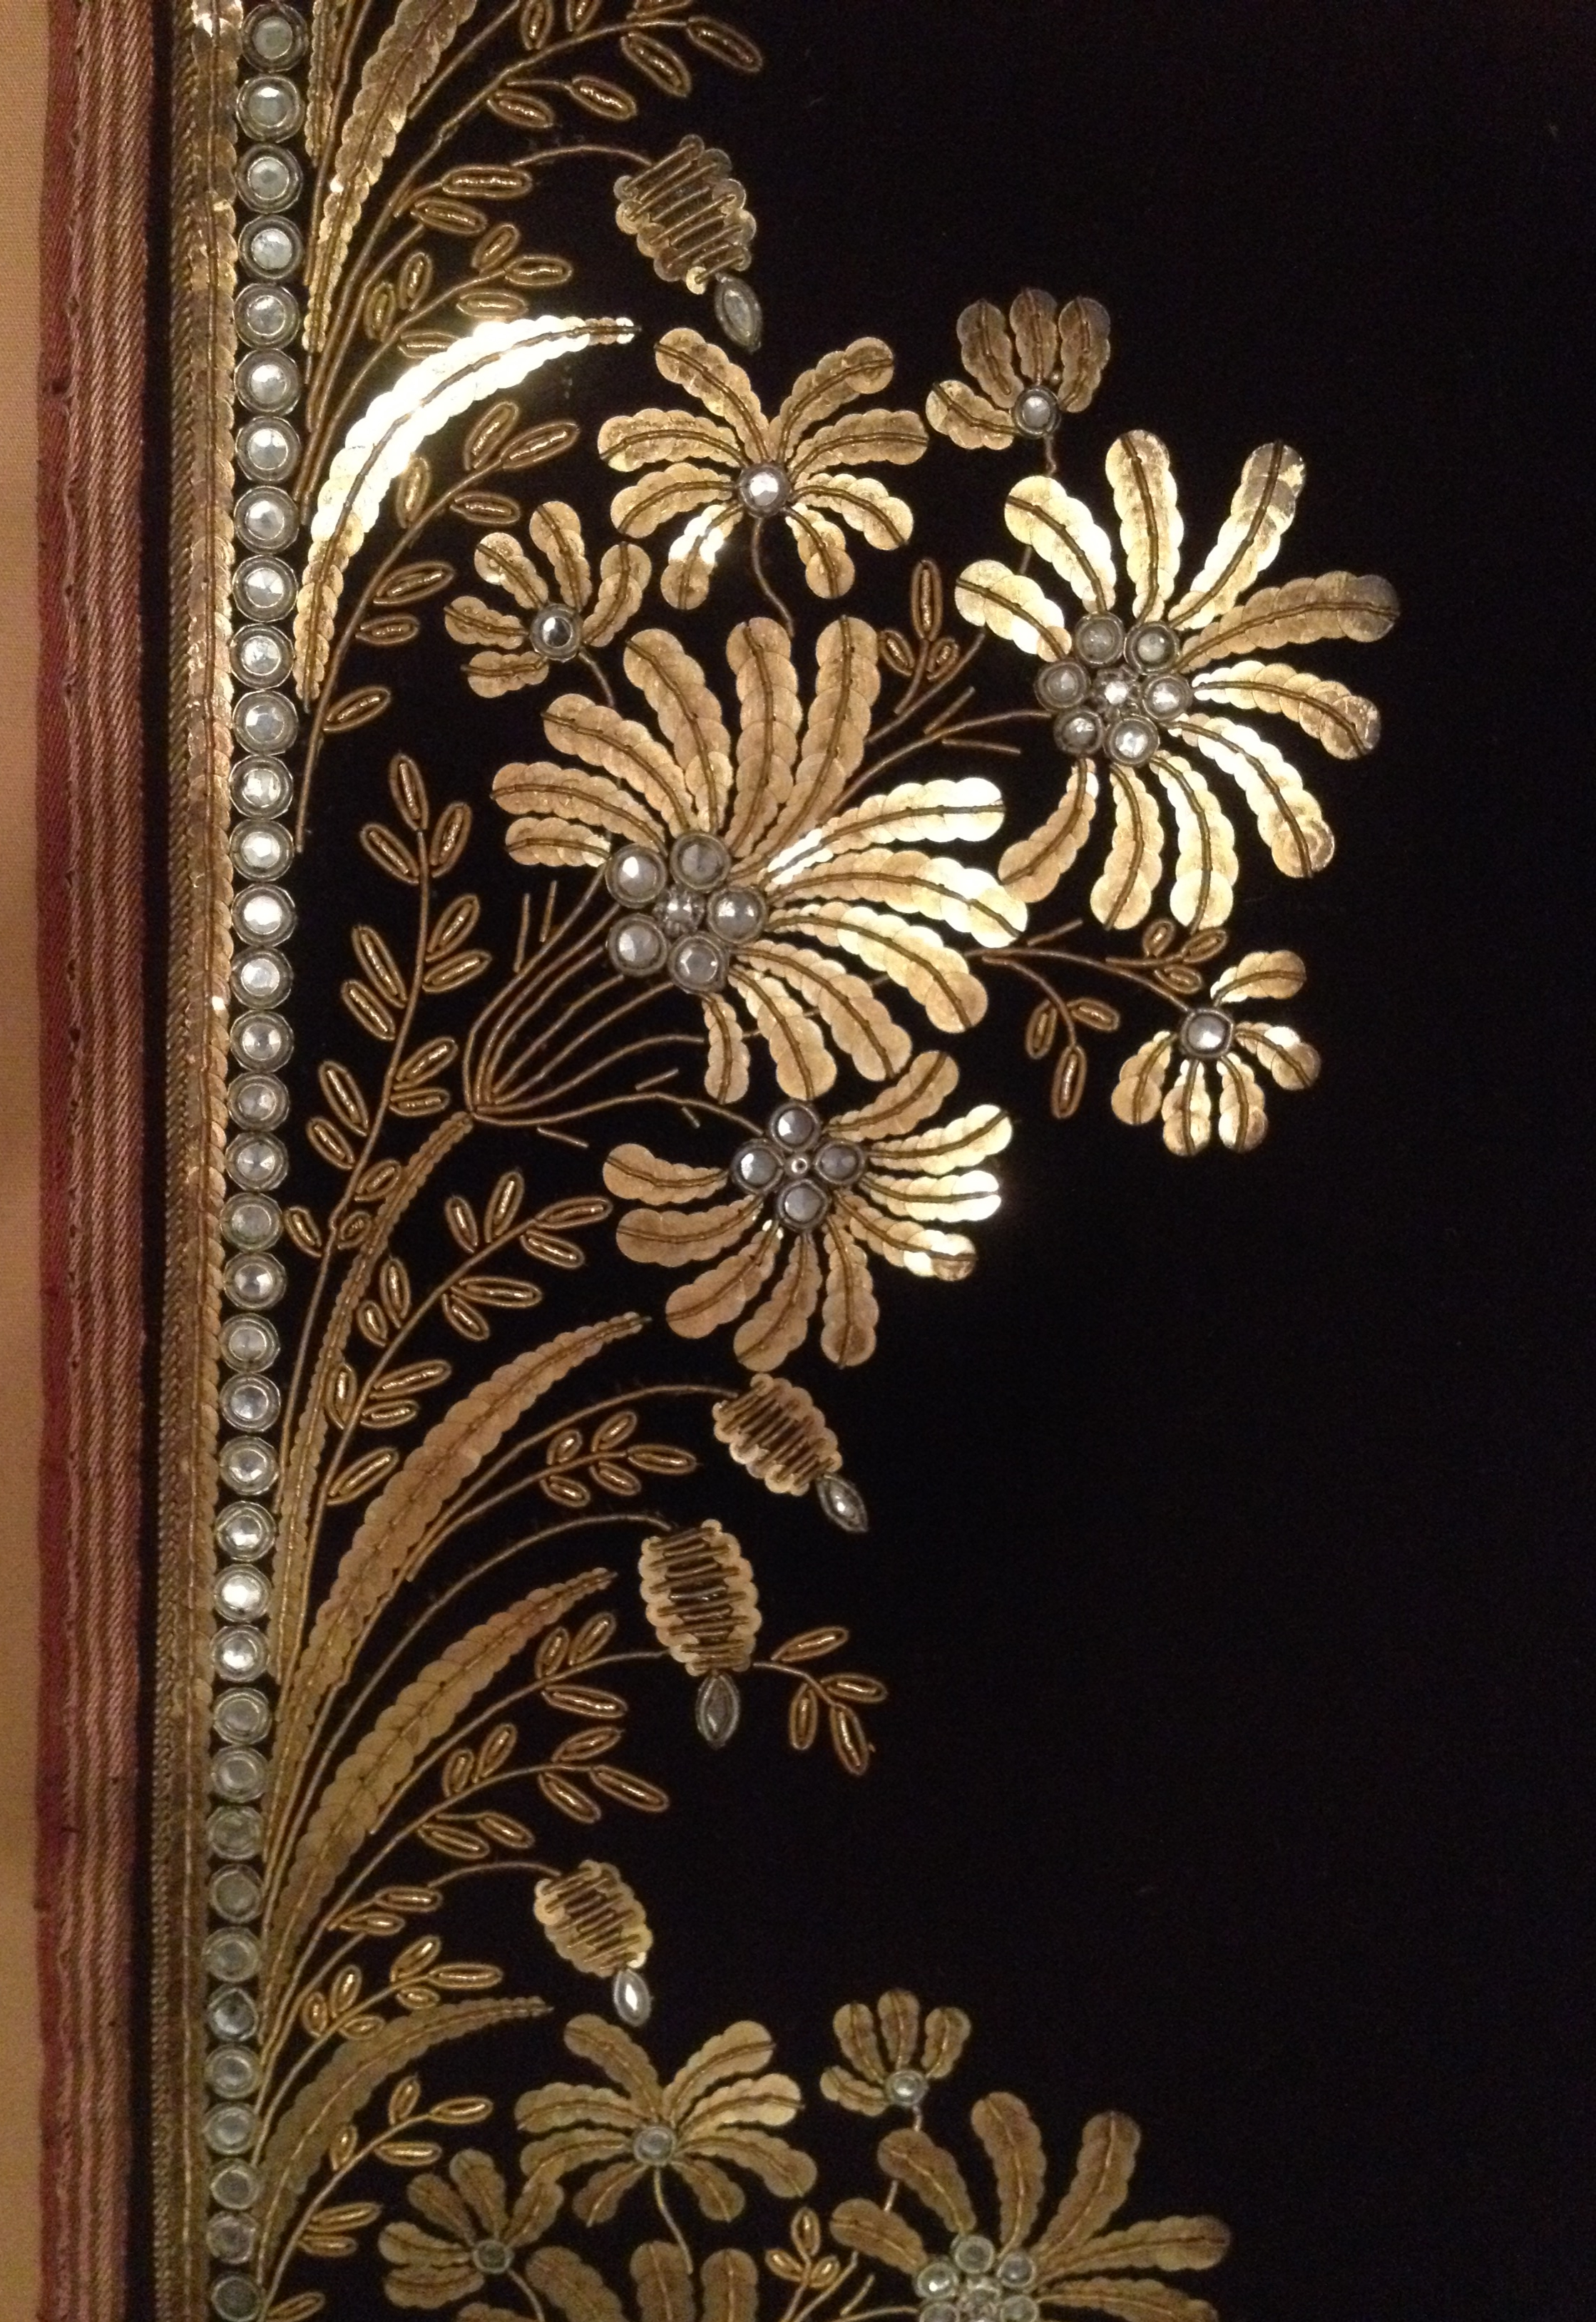 I love the sensitive use of paillettes in this fabric and the one below.